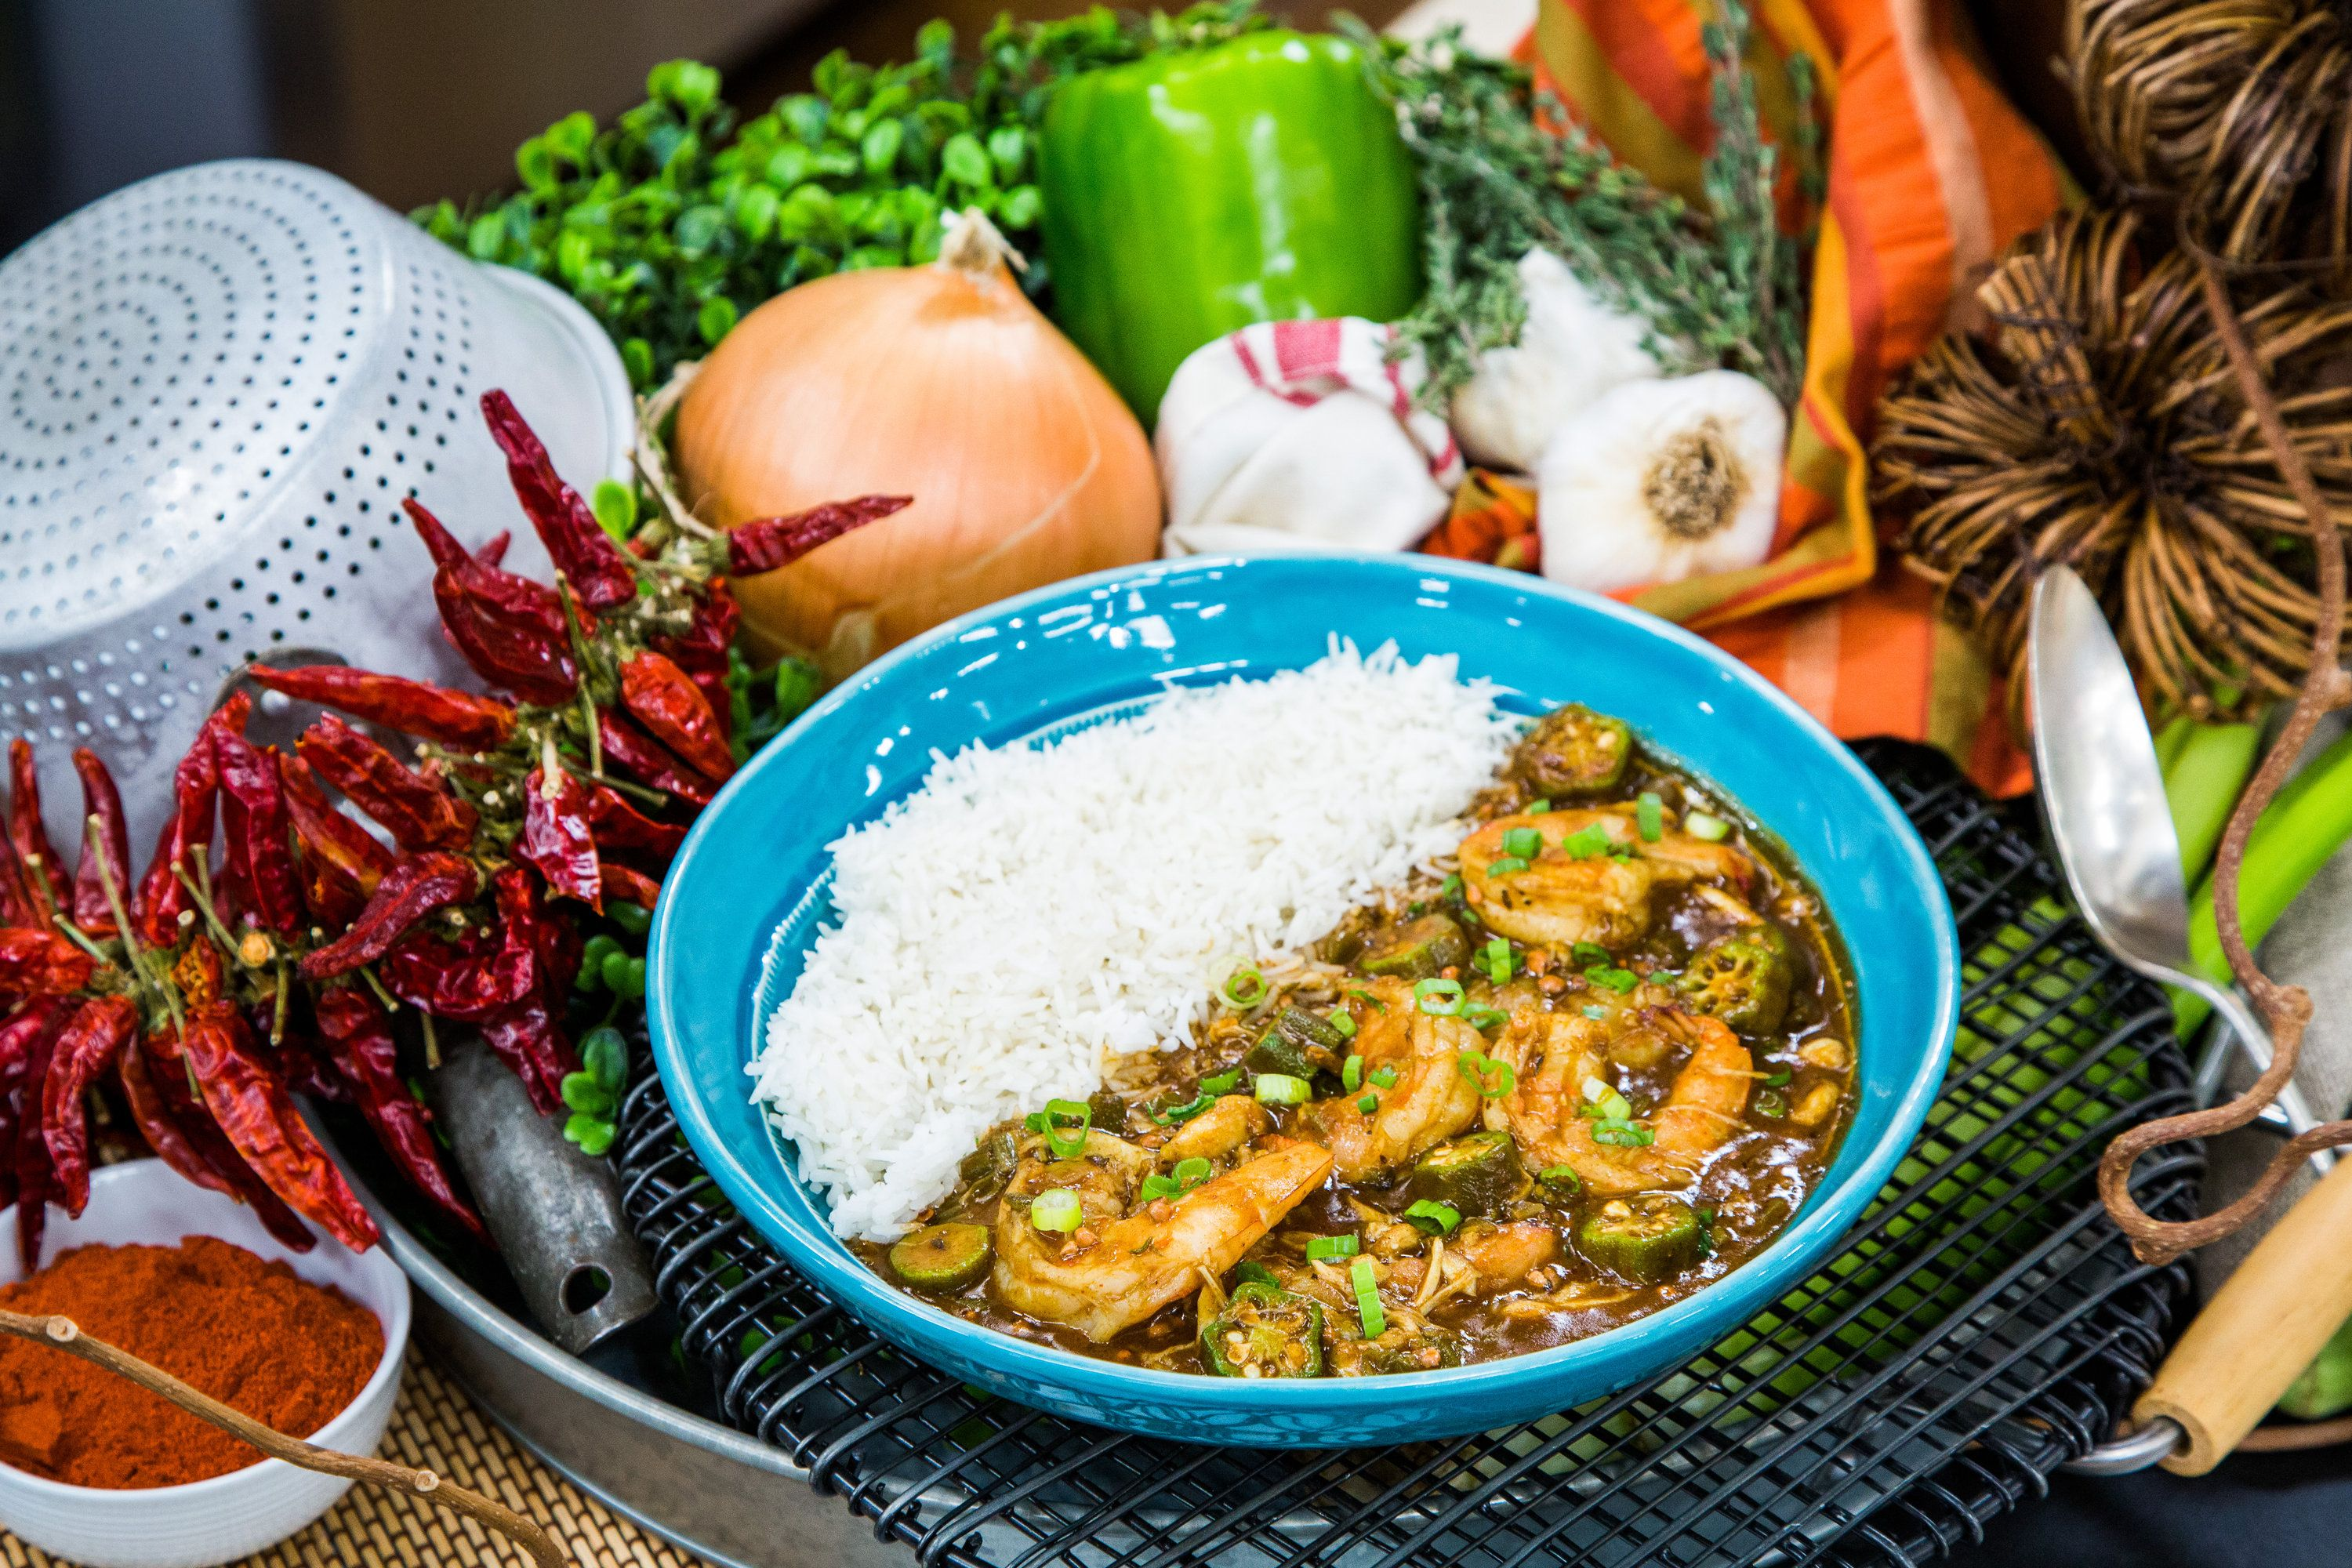 Recipes - Nanny's Seafood Gumbo | Hallmark Channel #cajundishes